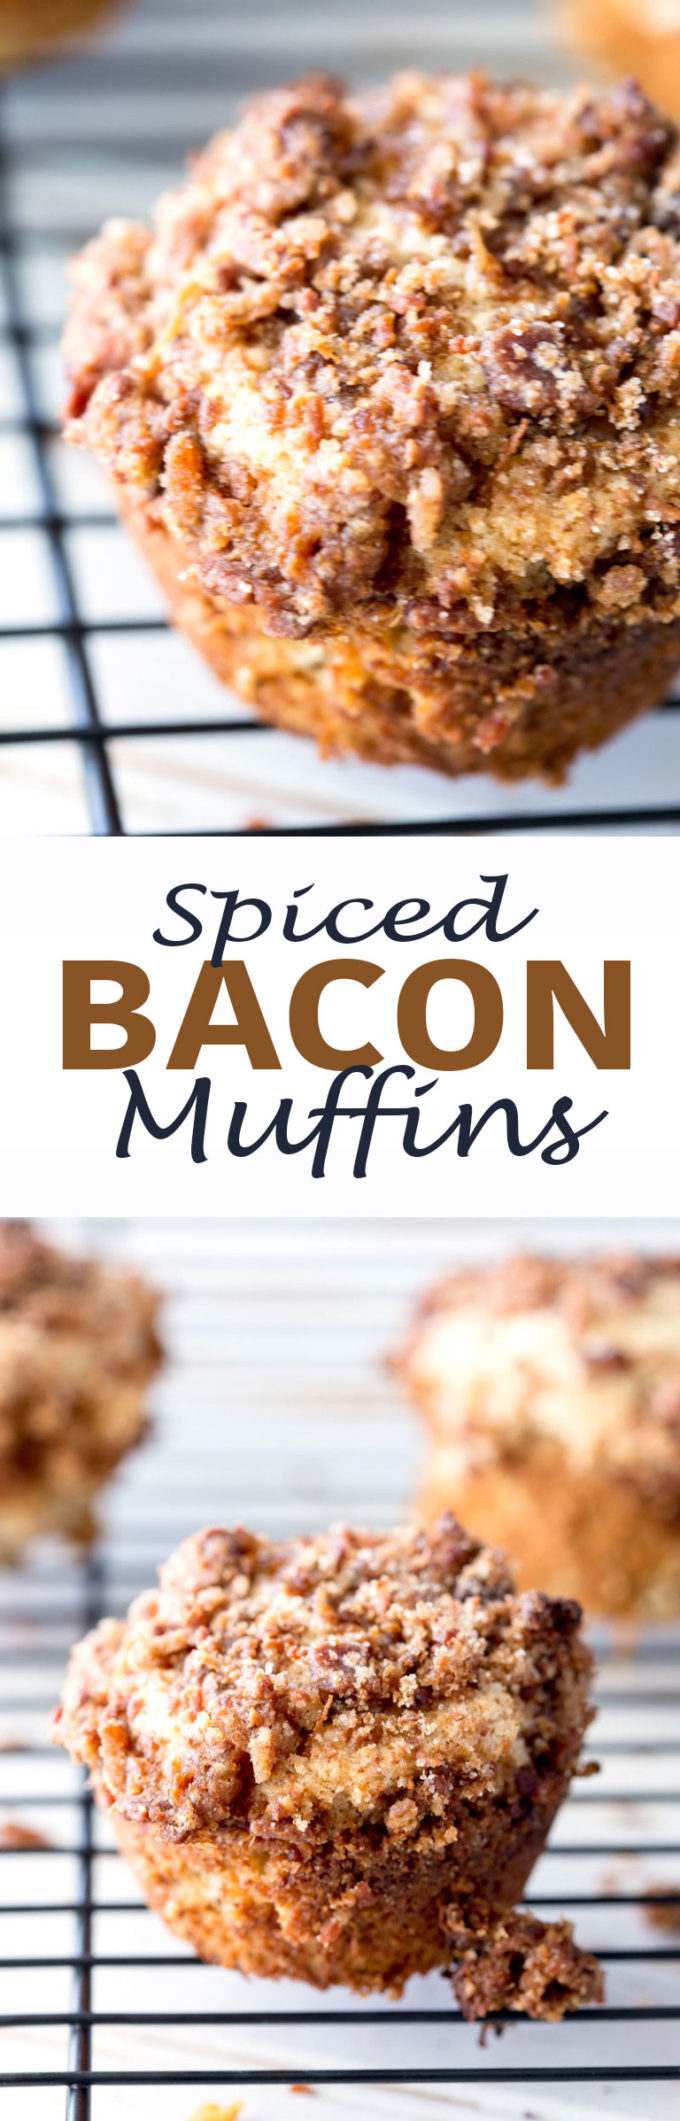 Spiced Bacon Muffins